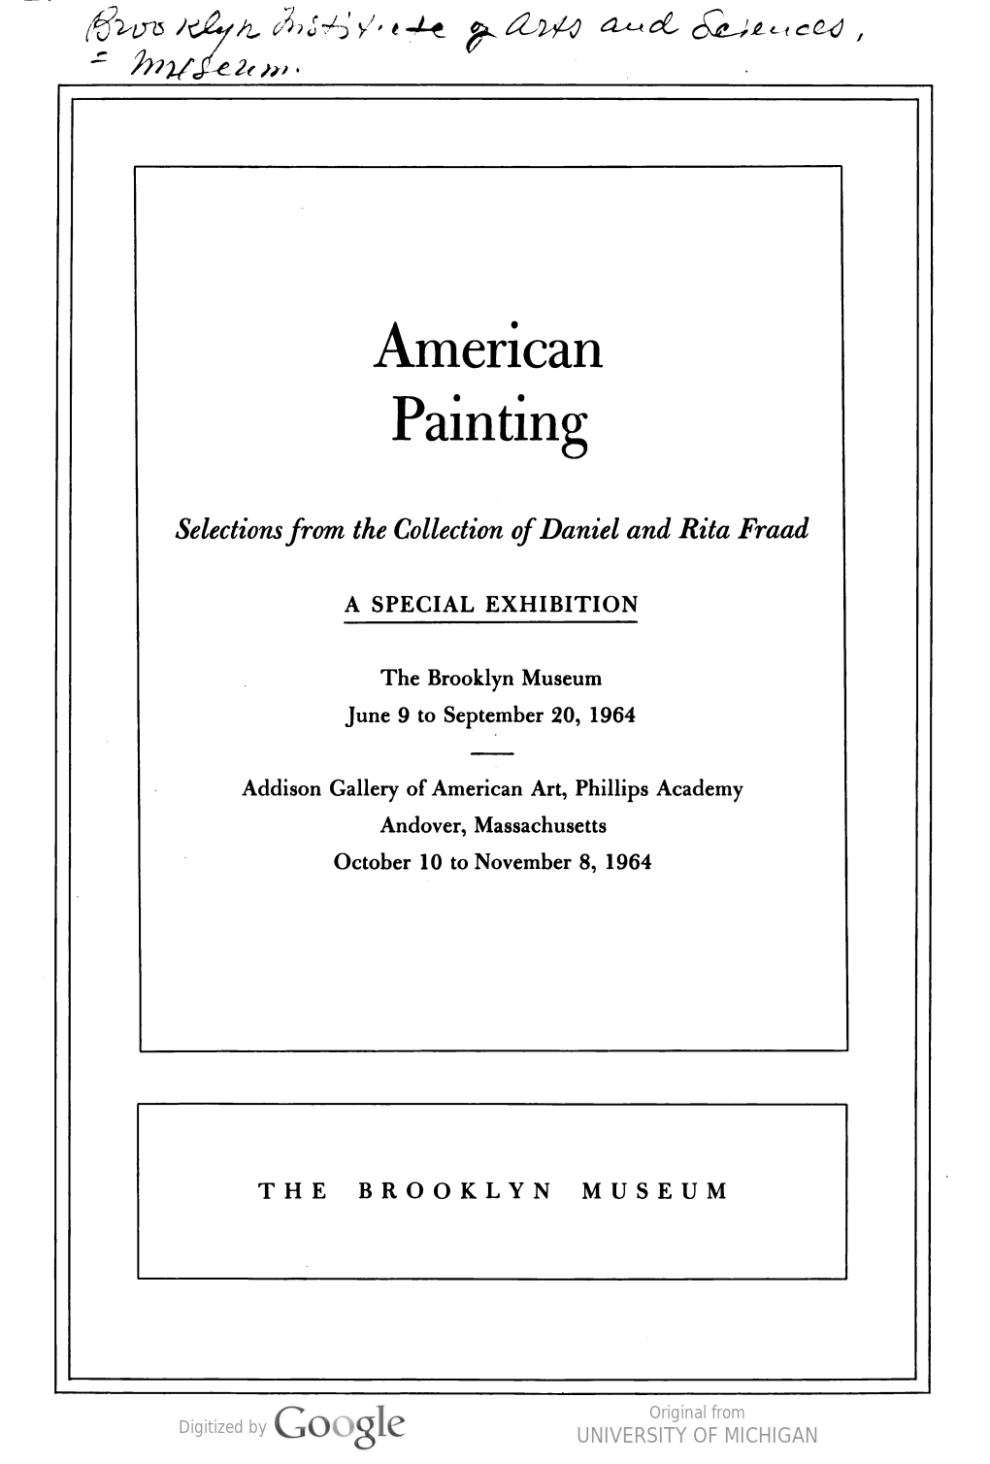 """1964 Brooklyn Museum, Brooklyn, NY, """"American Painting: Selections from the Collection of Daniel and Rita Fraad"""""""